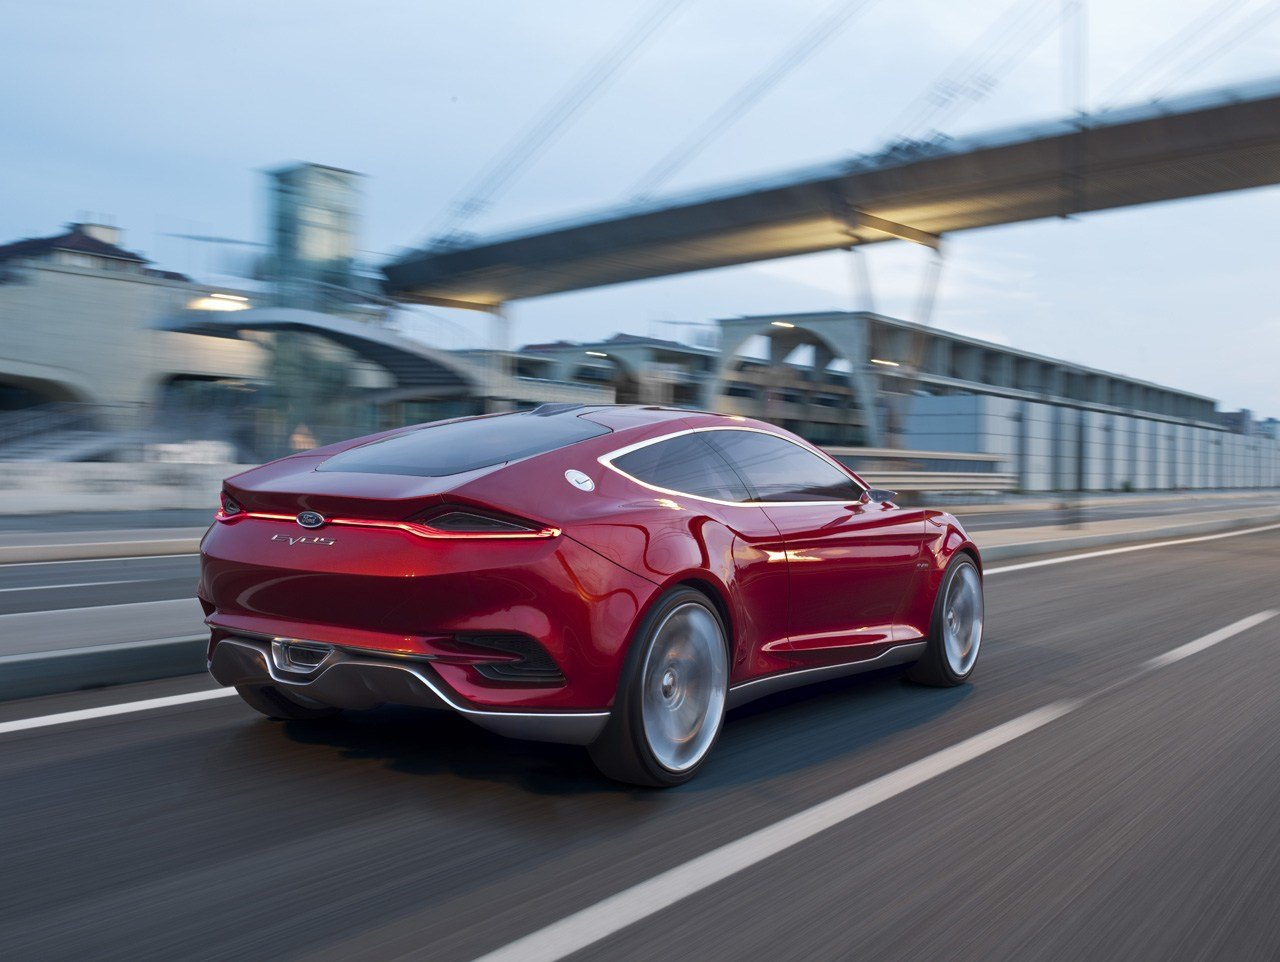 New Ford Evos Concept Car On This Month